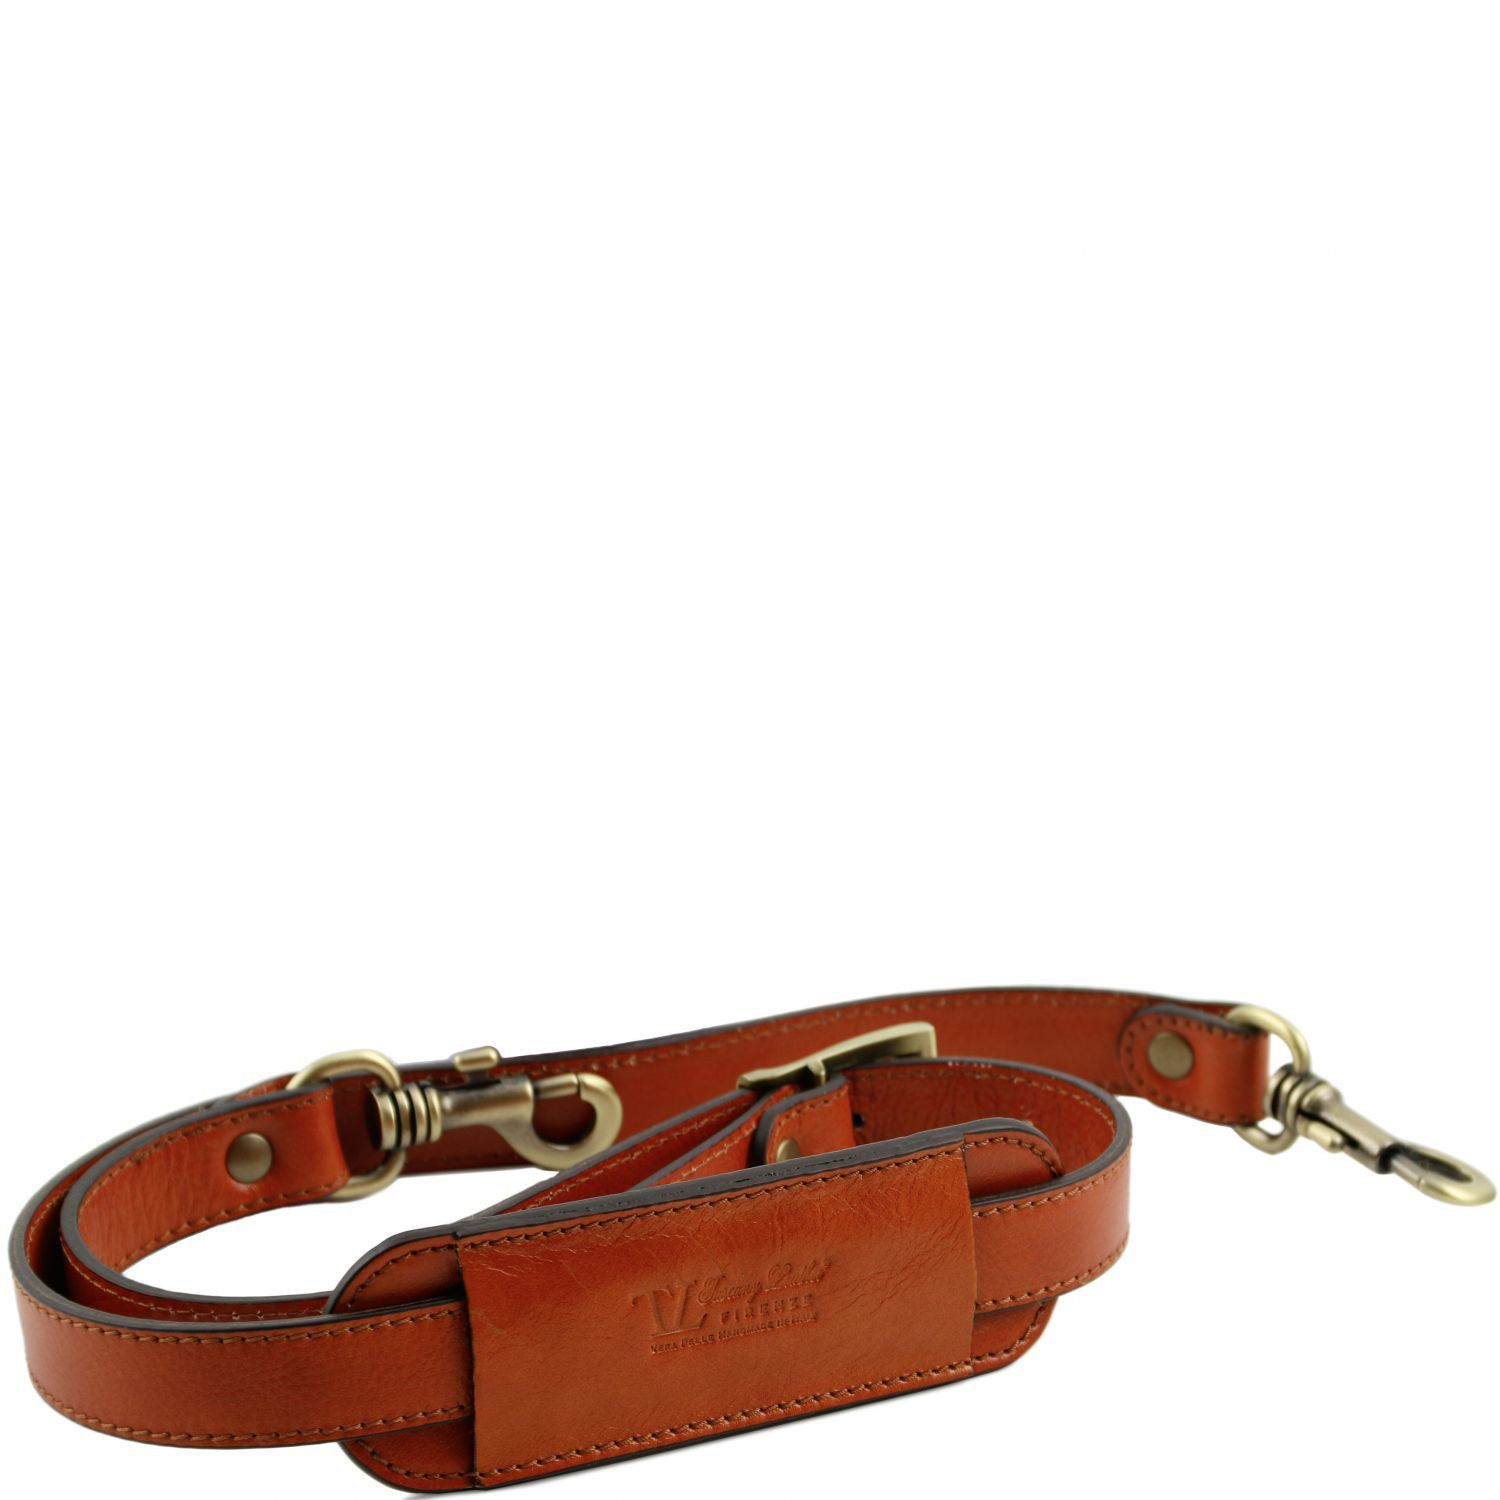 Bilde av Adjustable leather shoulder strap Honey